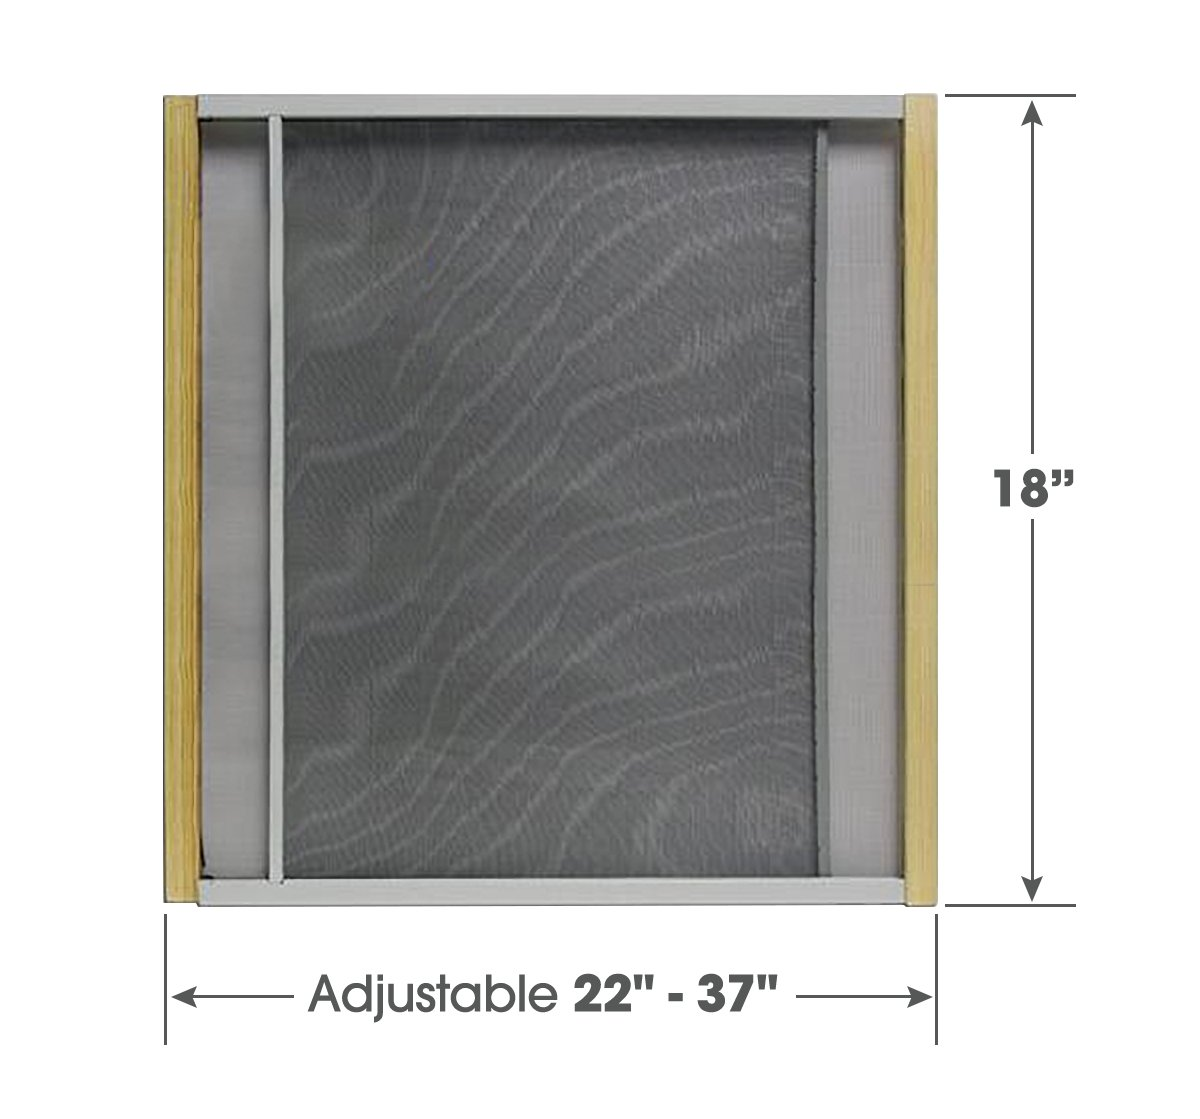 Adjustable Window Screen Built To Help Air Circulate Through Your Home, Adjusts Its Width Within a Range of 22'' - 37'' - 18 in high, Installs in Seconds No Tools Needed